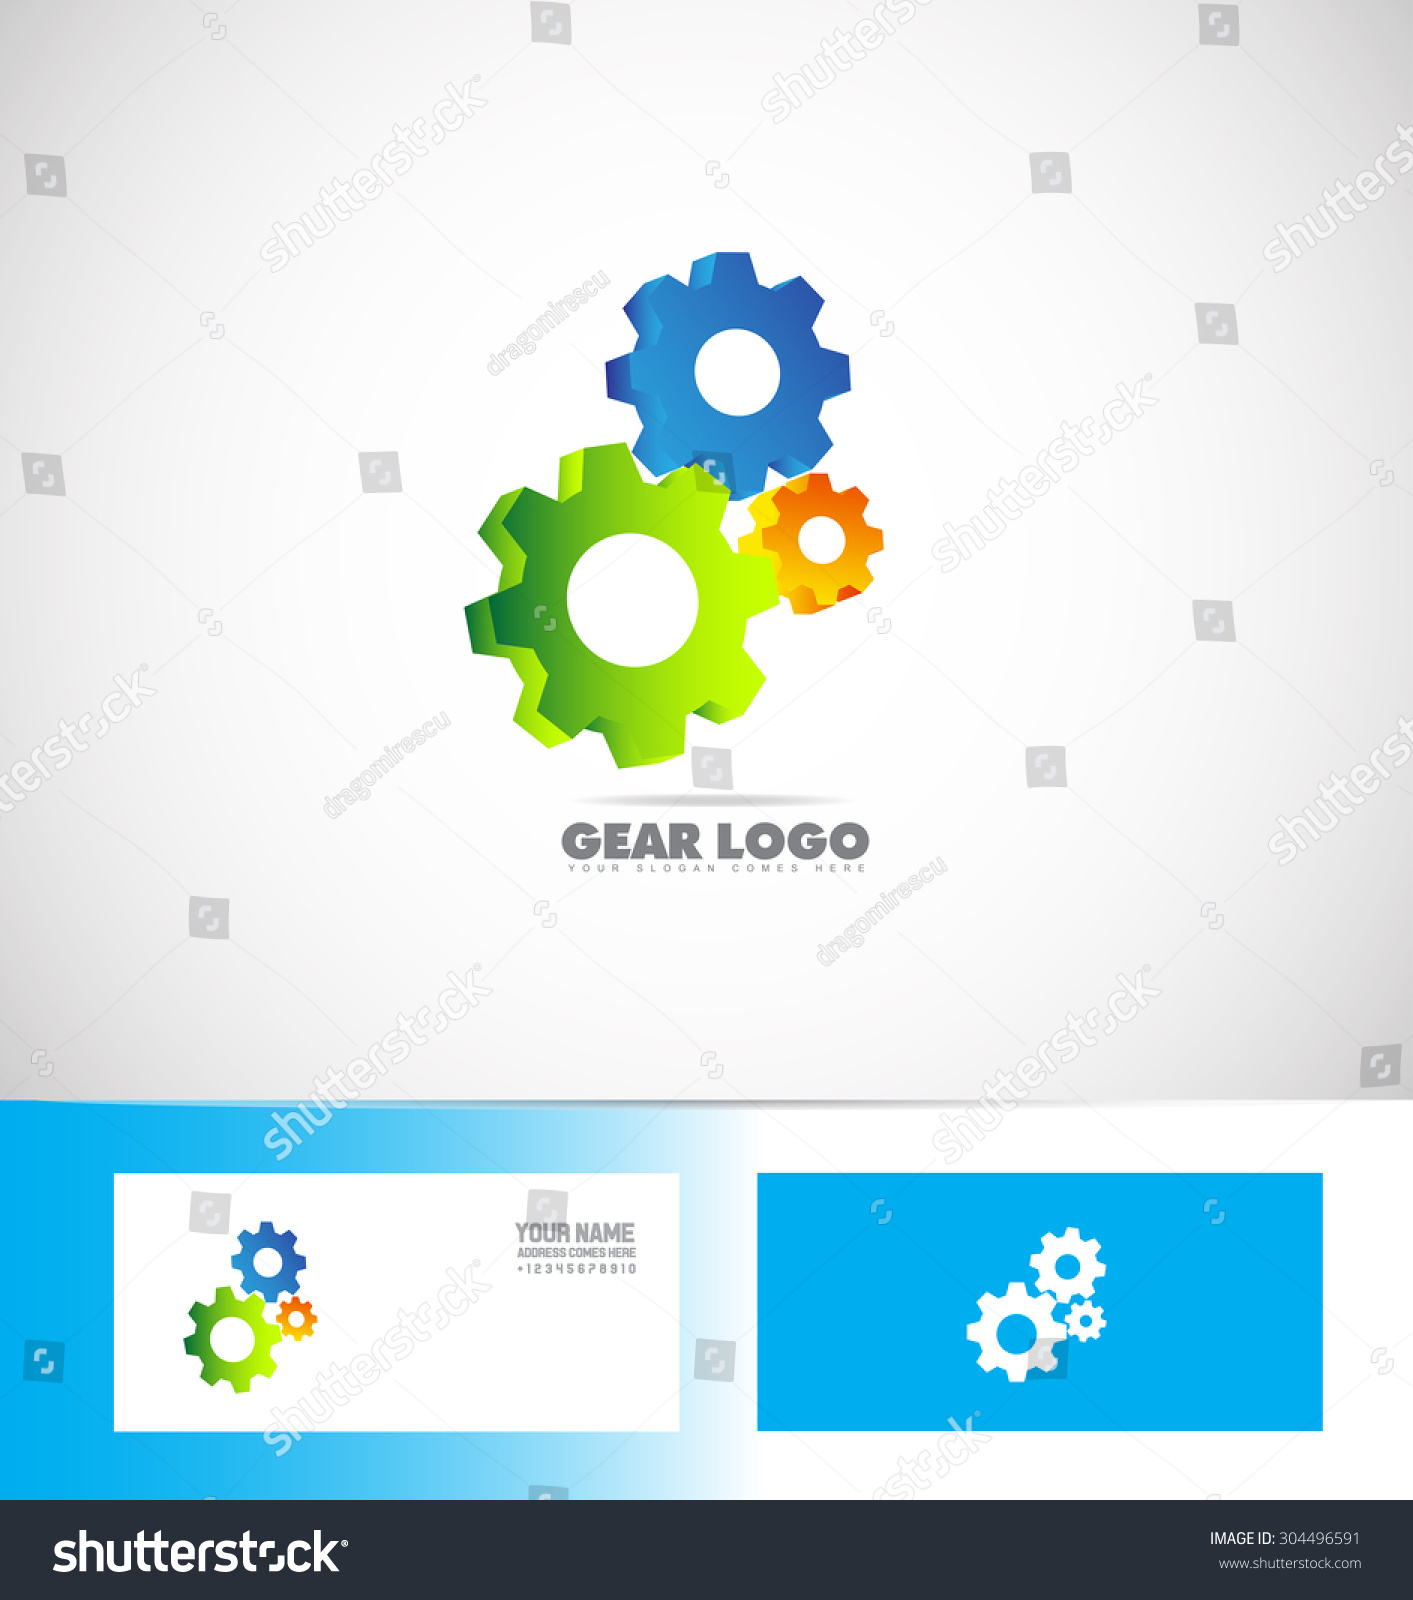 vector company logo icon element template gear machinery cog wheels 3d